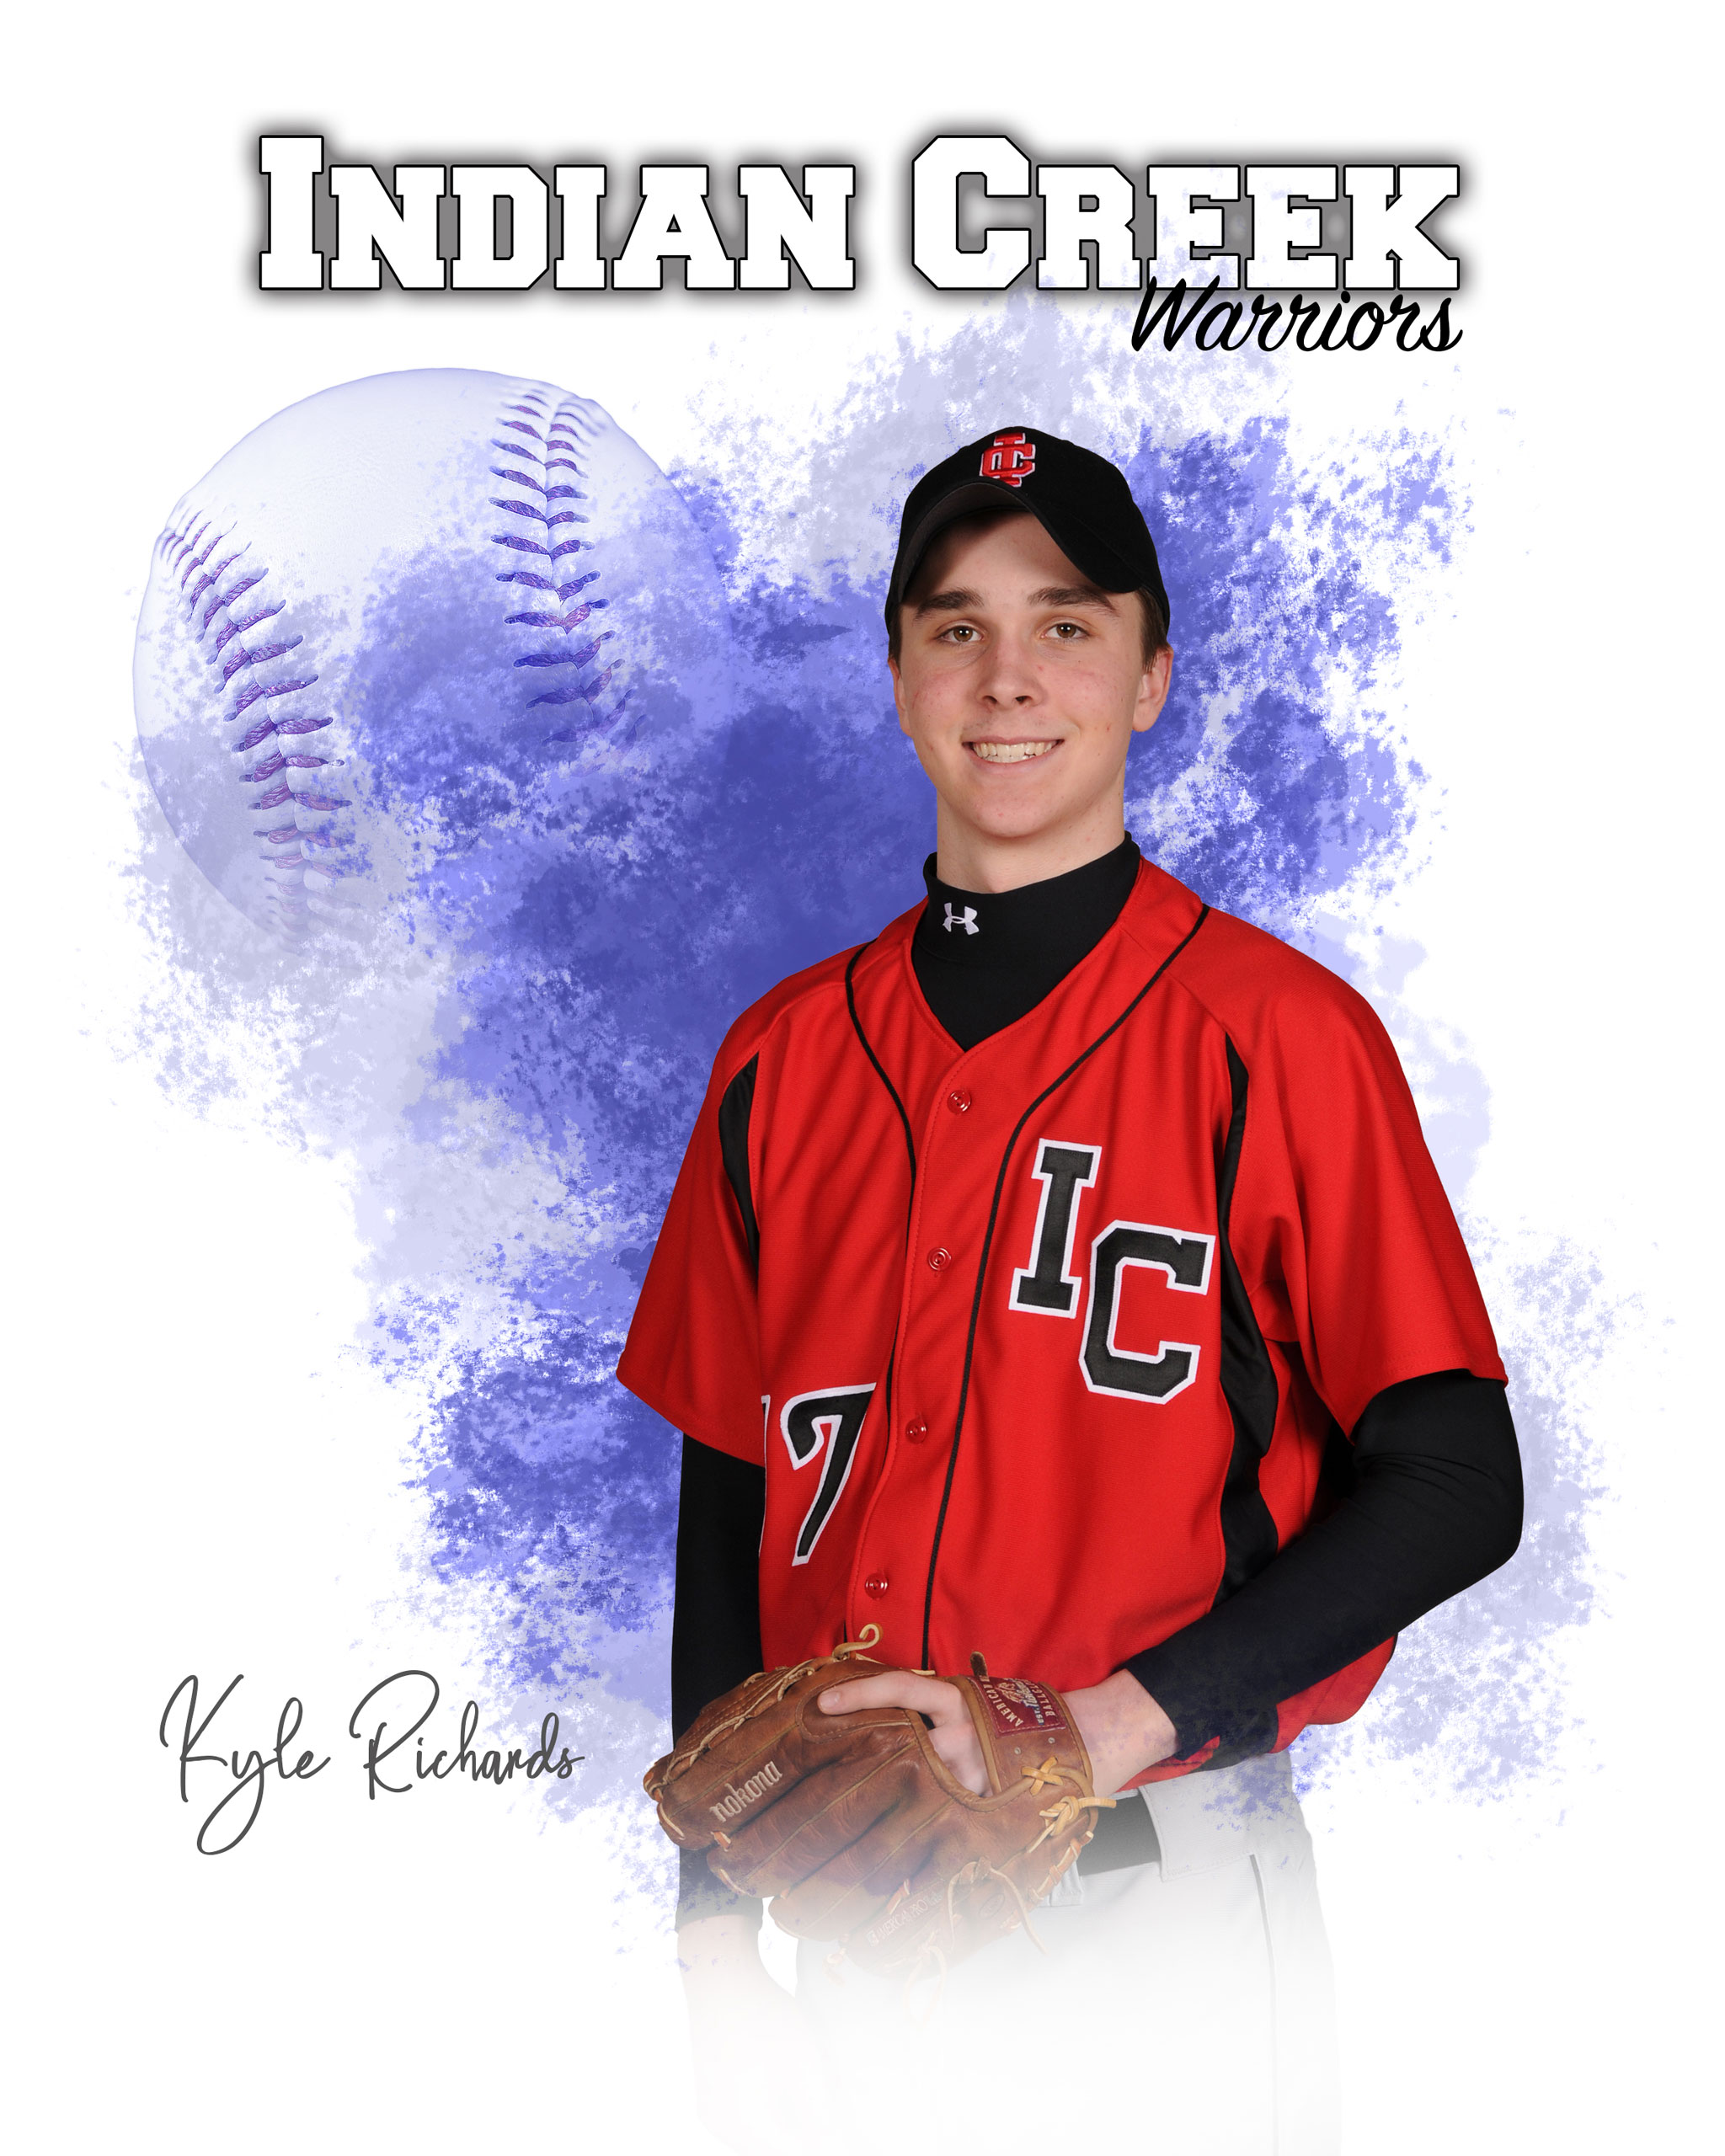 Photoshop templates for sports and portrait photography - baseball